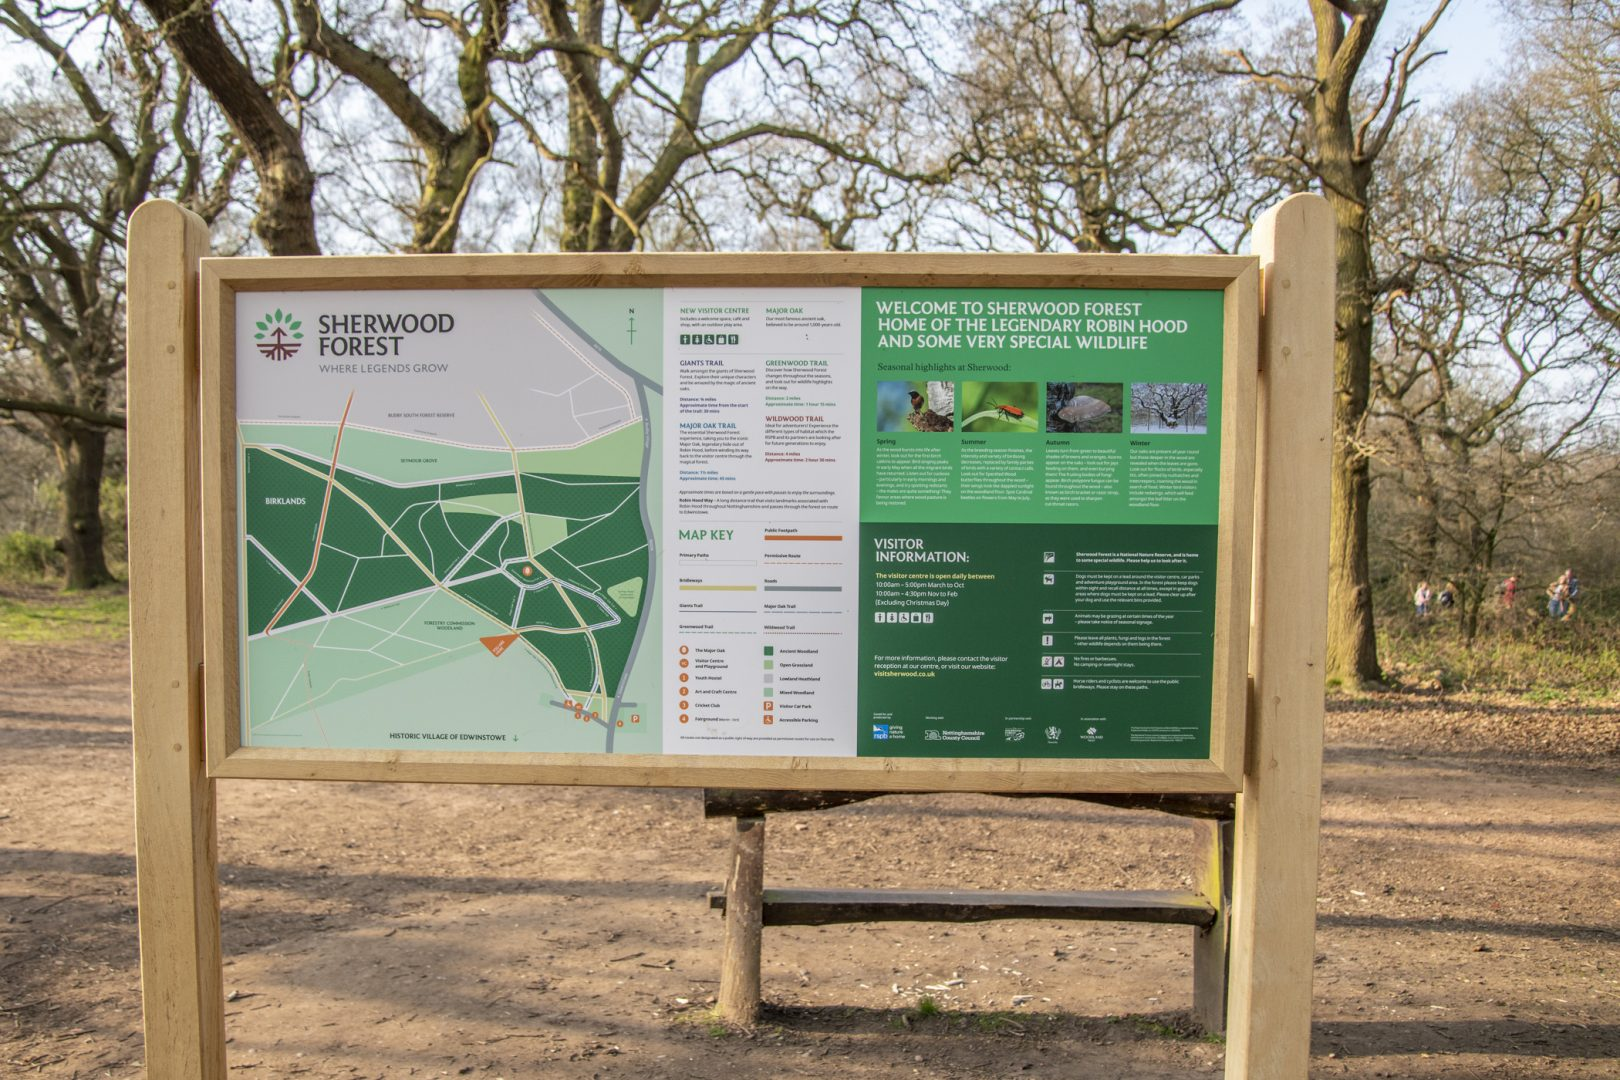 Sherwood Forest trails